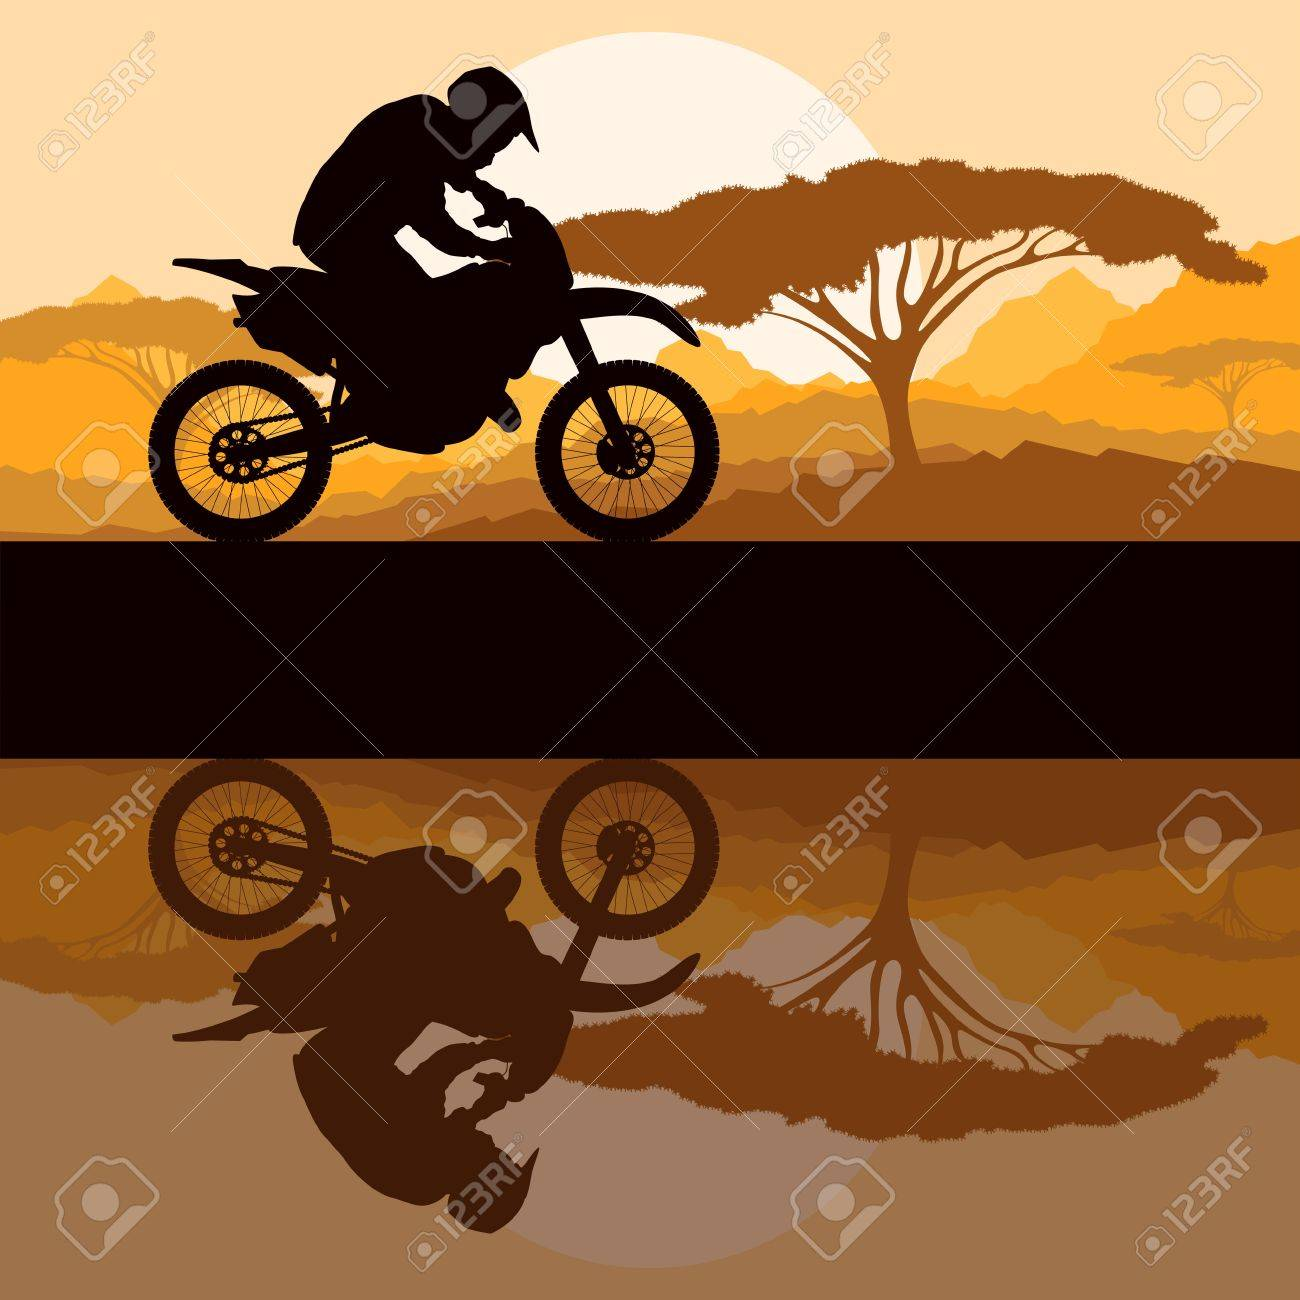 Motorbike rider motorcycle silhouette in wild mountain landscape background illustration vector Stock Vector - 15795758